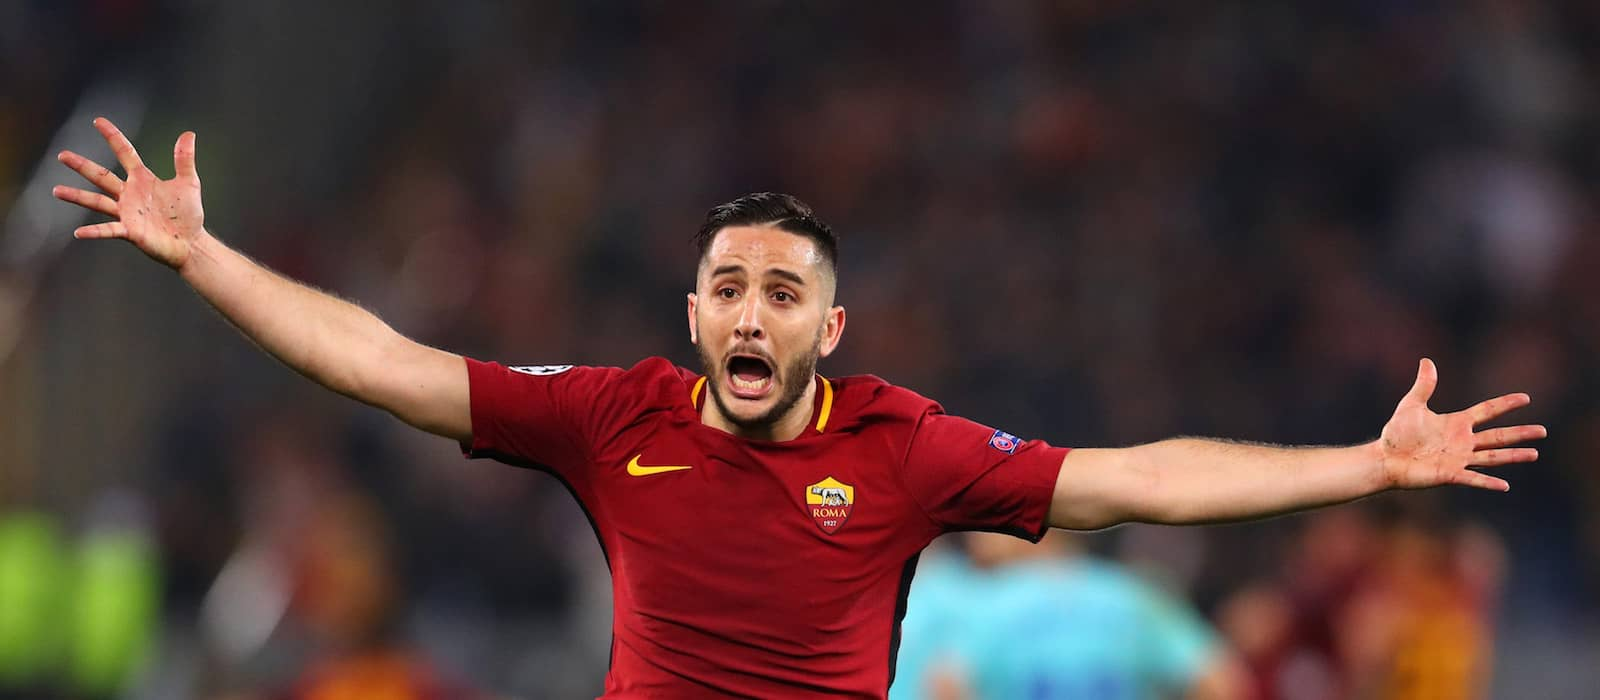 Manchester United closing in on Roma's Kostas Manolas: report